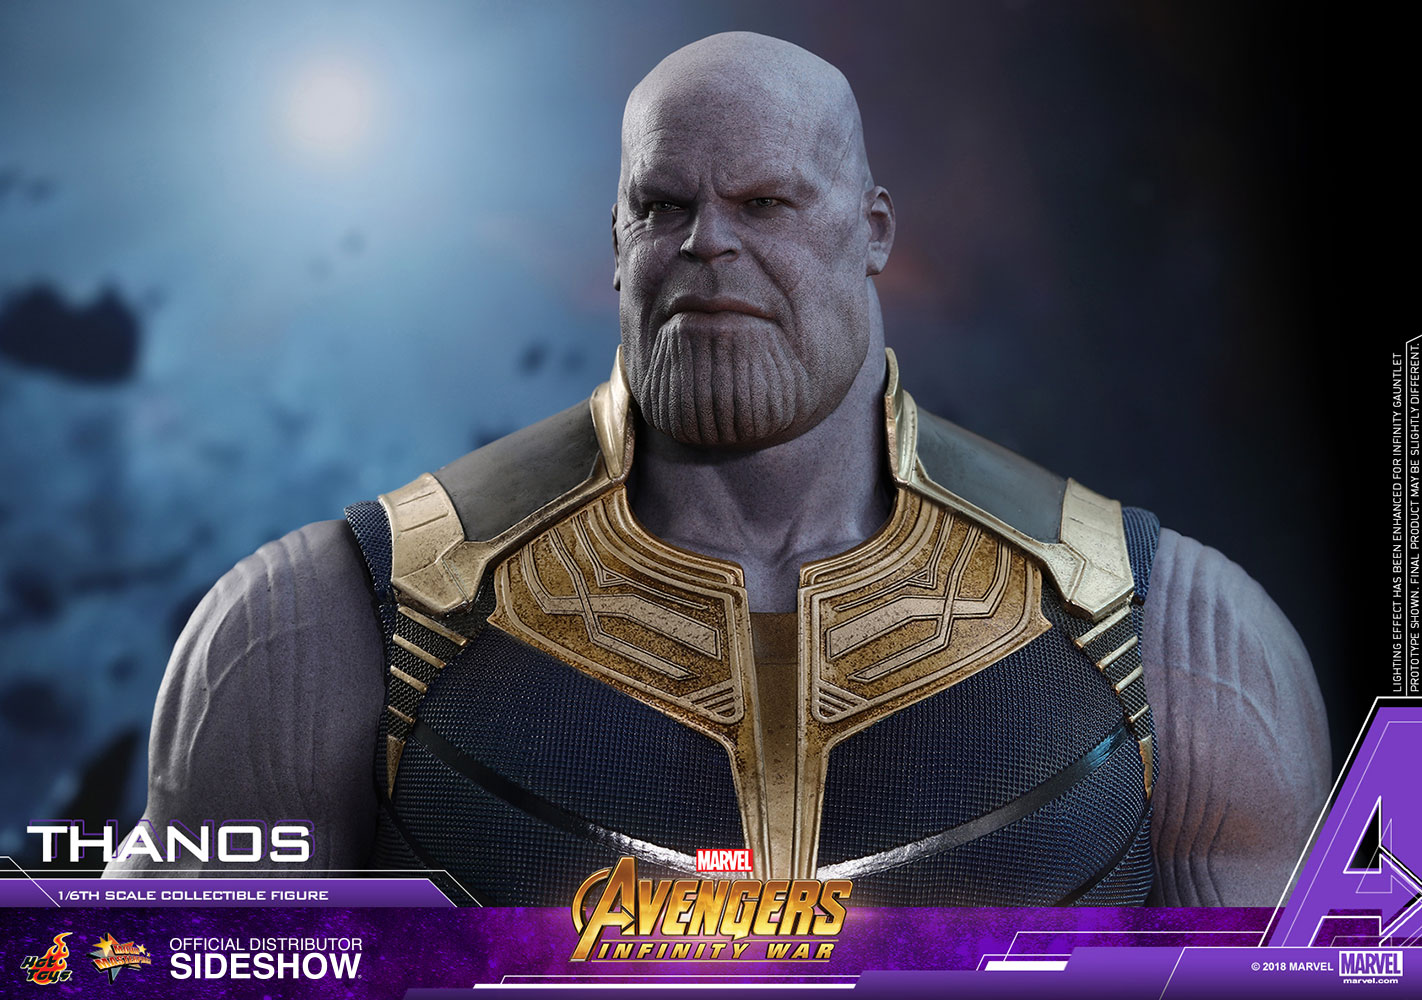 marvel-avengers-infinity-war-thanos-sixth-scale-figure-hot-toys-903429-22